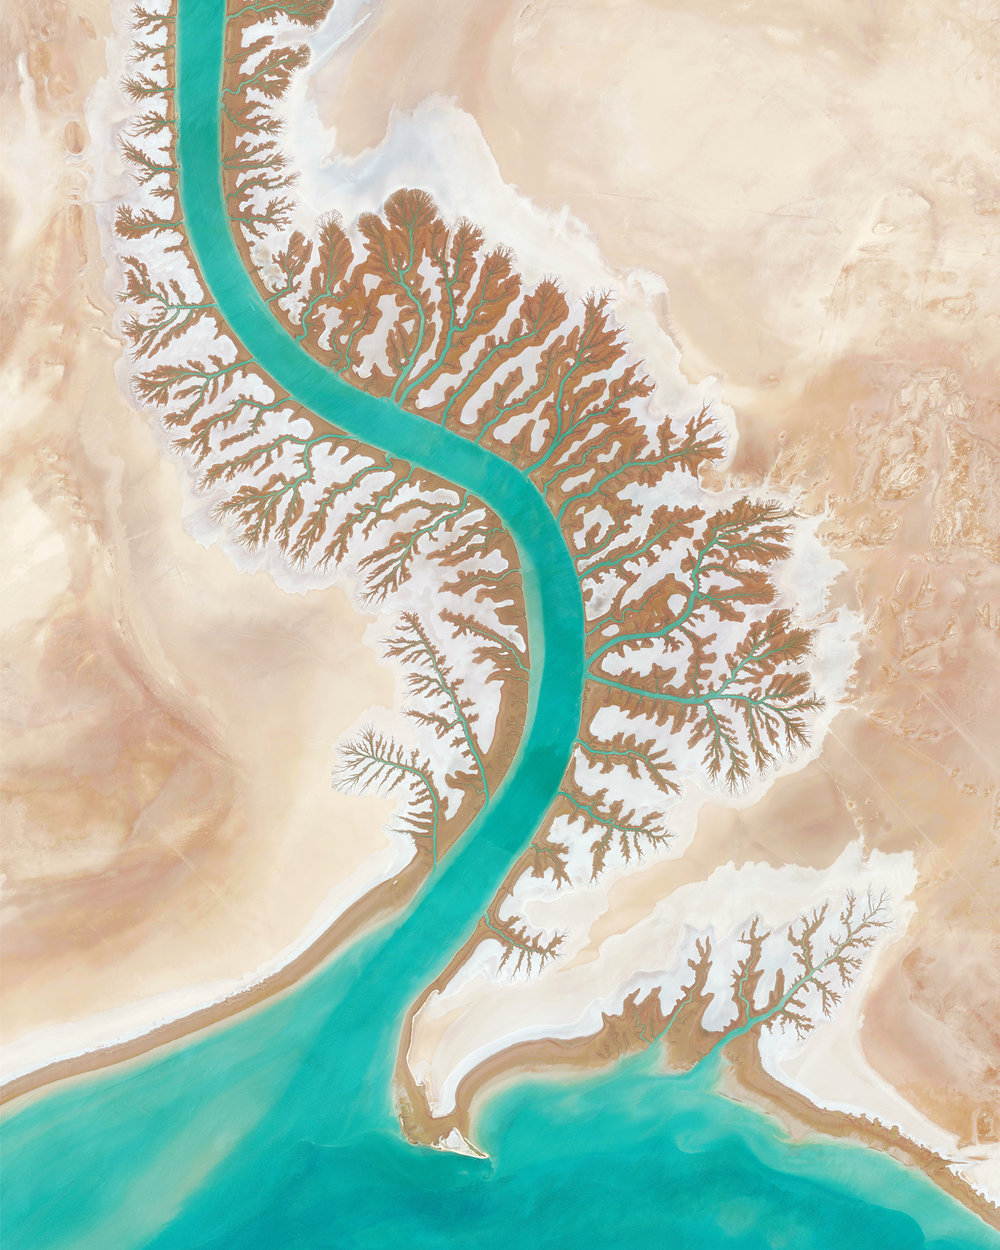 "Dendritic drainage systems are seen around the Shadegan Lagoon by Musa Bay in Iran. The word 'dendritic' refers to the pools' resemblance to the branches of a tree, and this pattern develops when streams move across relatively flat and uniform rocks, or over a surface that resists erosion.  30°27'24.3""N 48°55'46.0""E  Source imagery: DigitalGlobe"